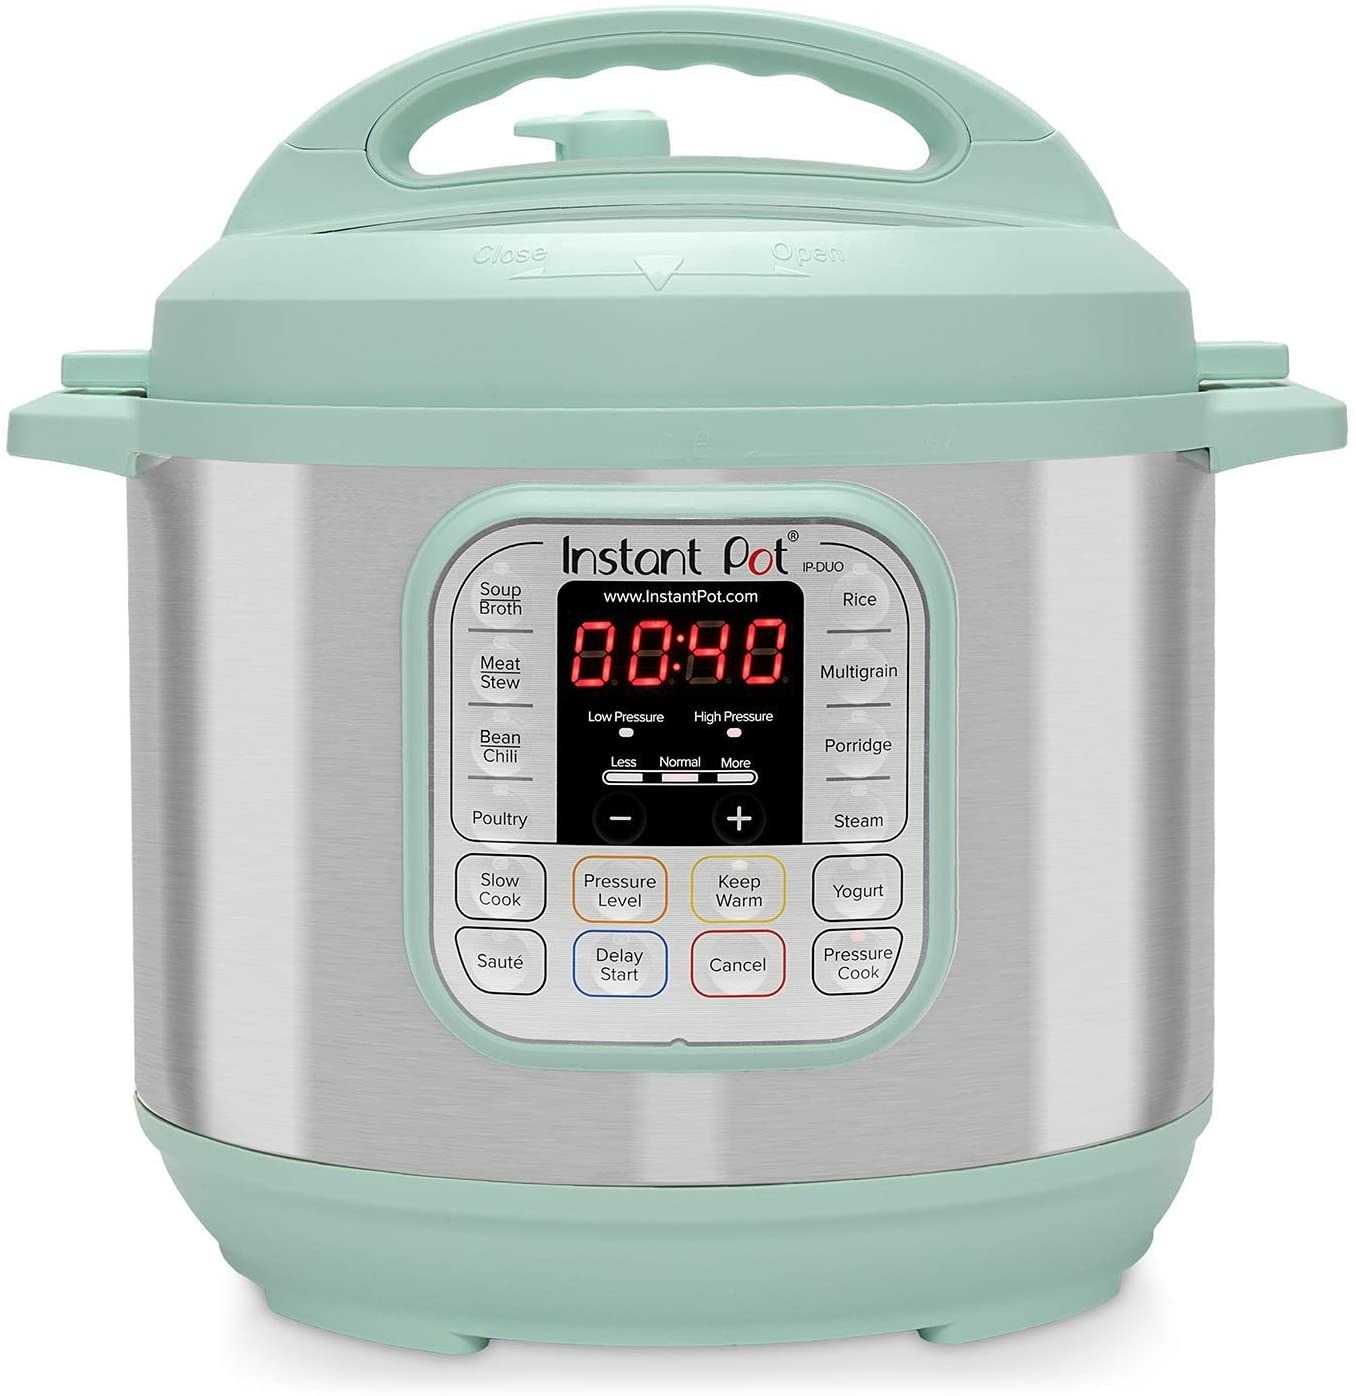 Instant Pot in teal